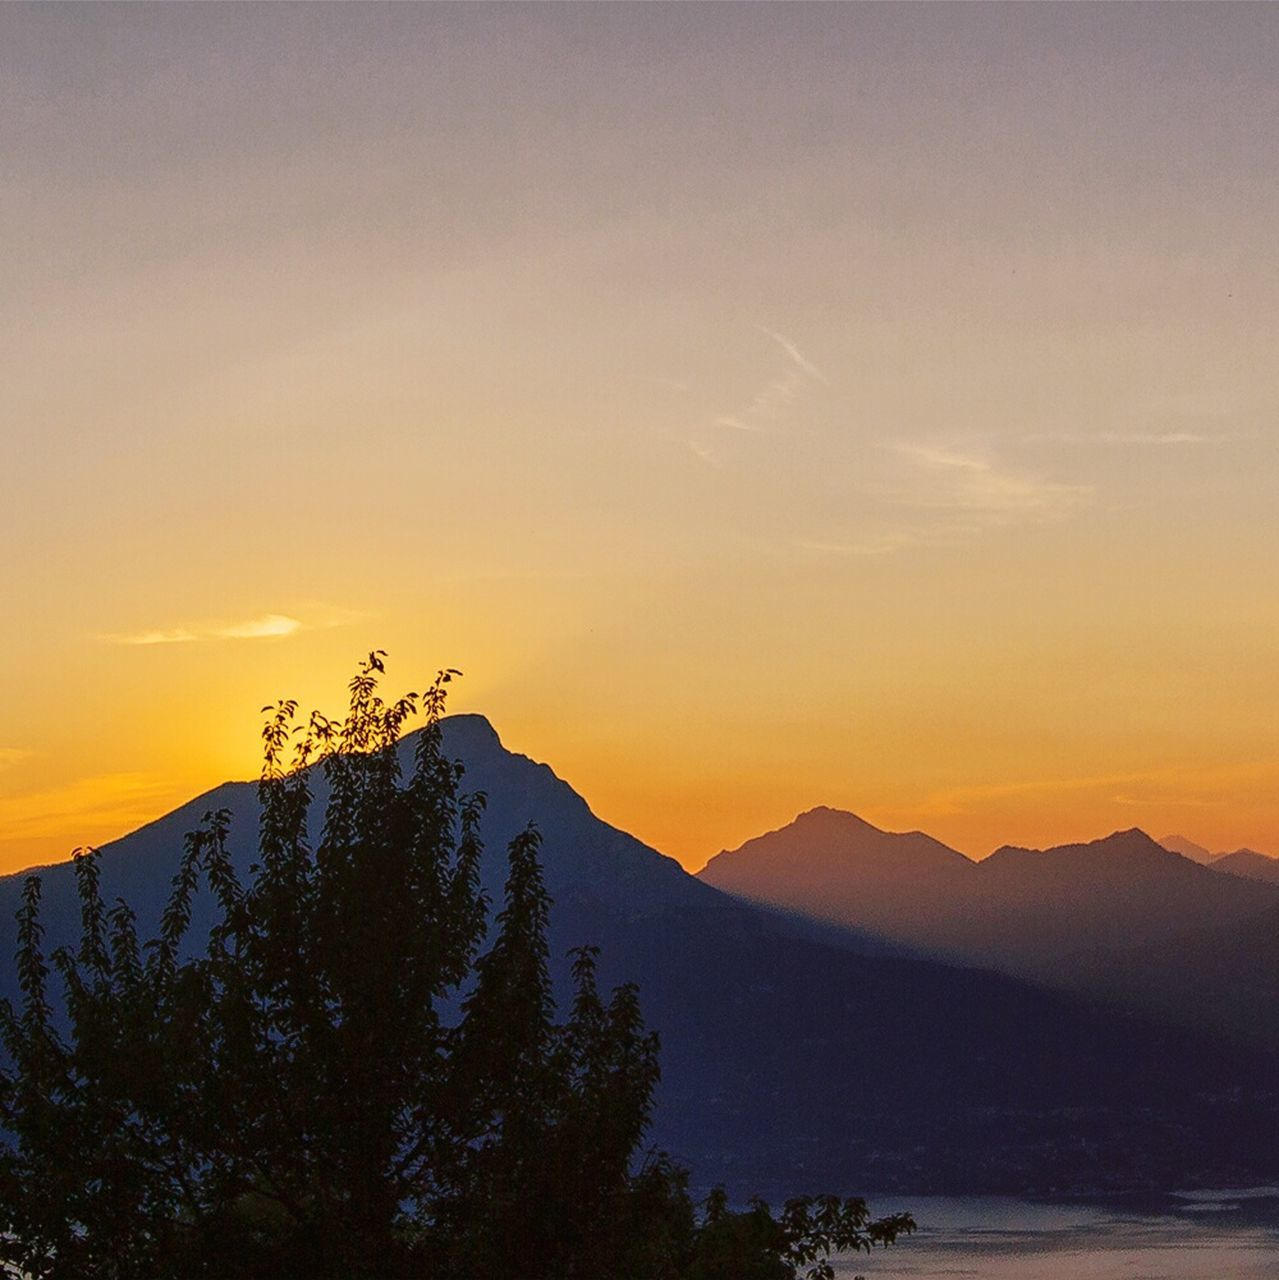 sunset, beauty in nature, nature, scenics, mountain, tranquility, tranquil scene, silhouette, no people, tree, outdoors, water, sky, mountain range, bird, animal themes, day